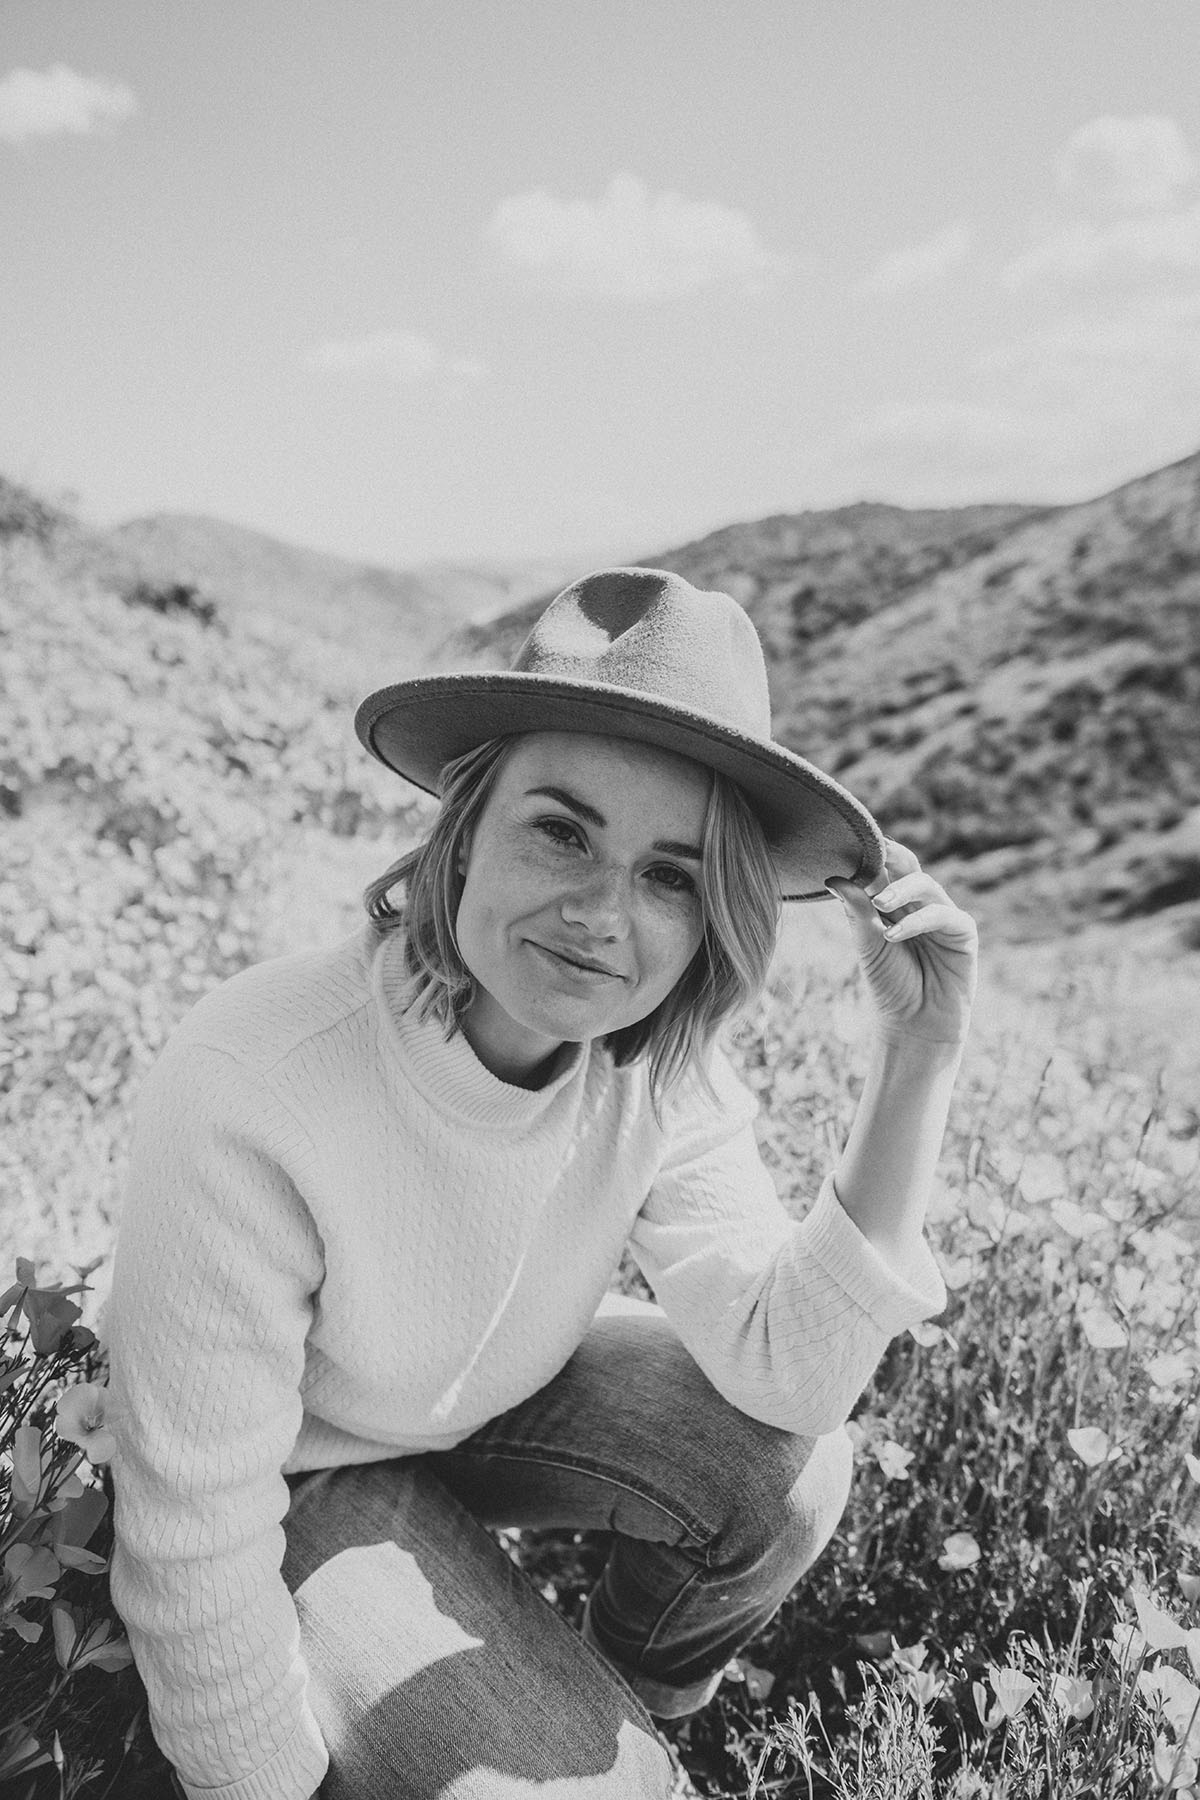 Walker Canyon California Poppy fields Adventure portraits